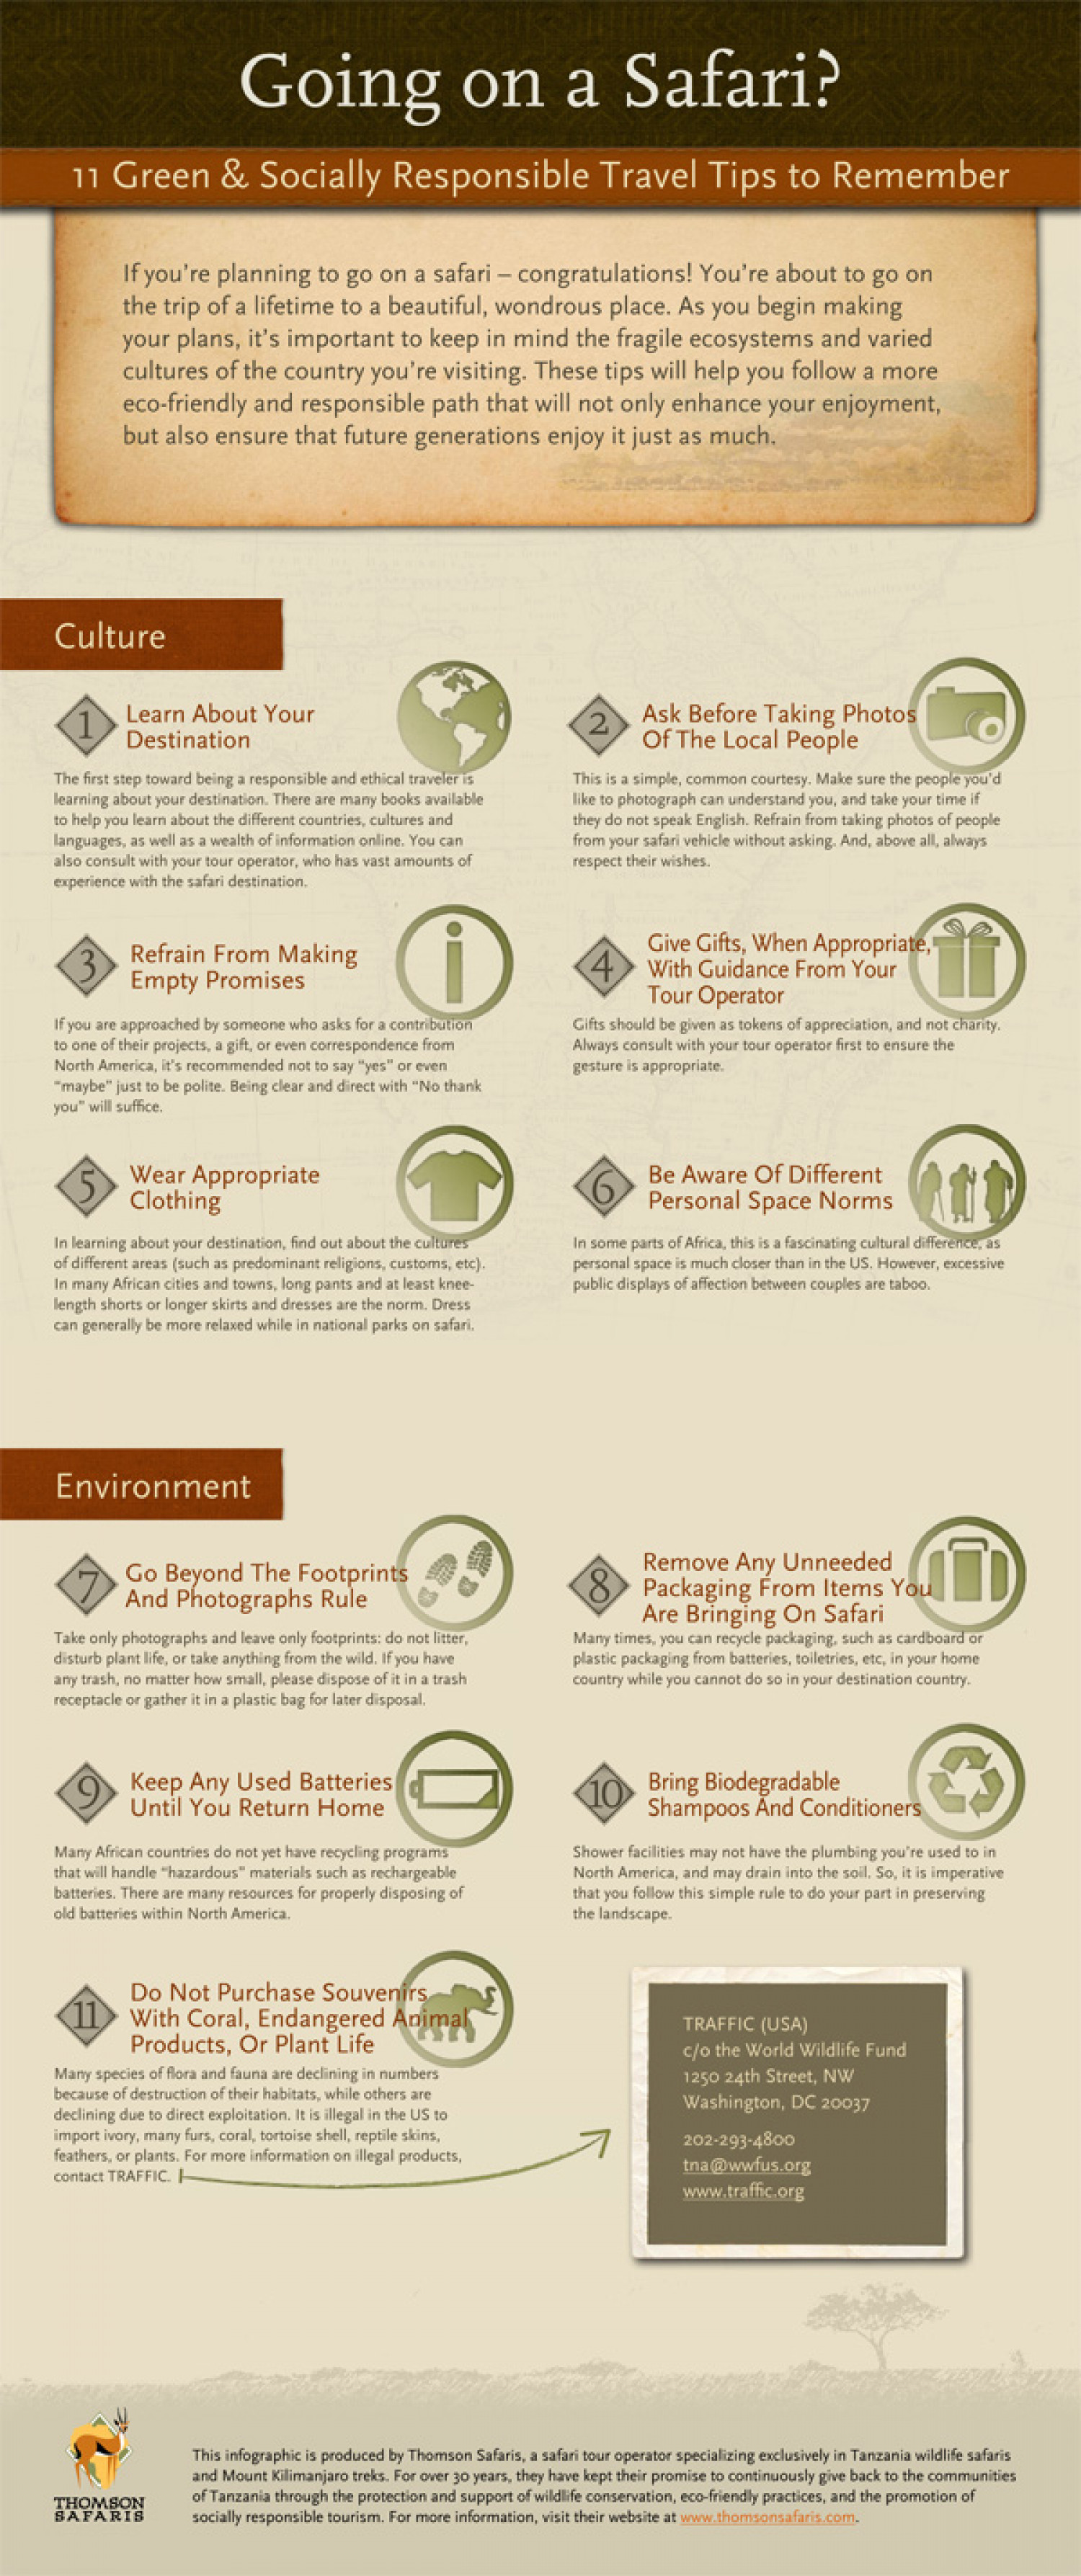 11 Green & Socially Responsible Travel Tips Infographic